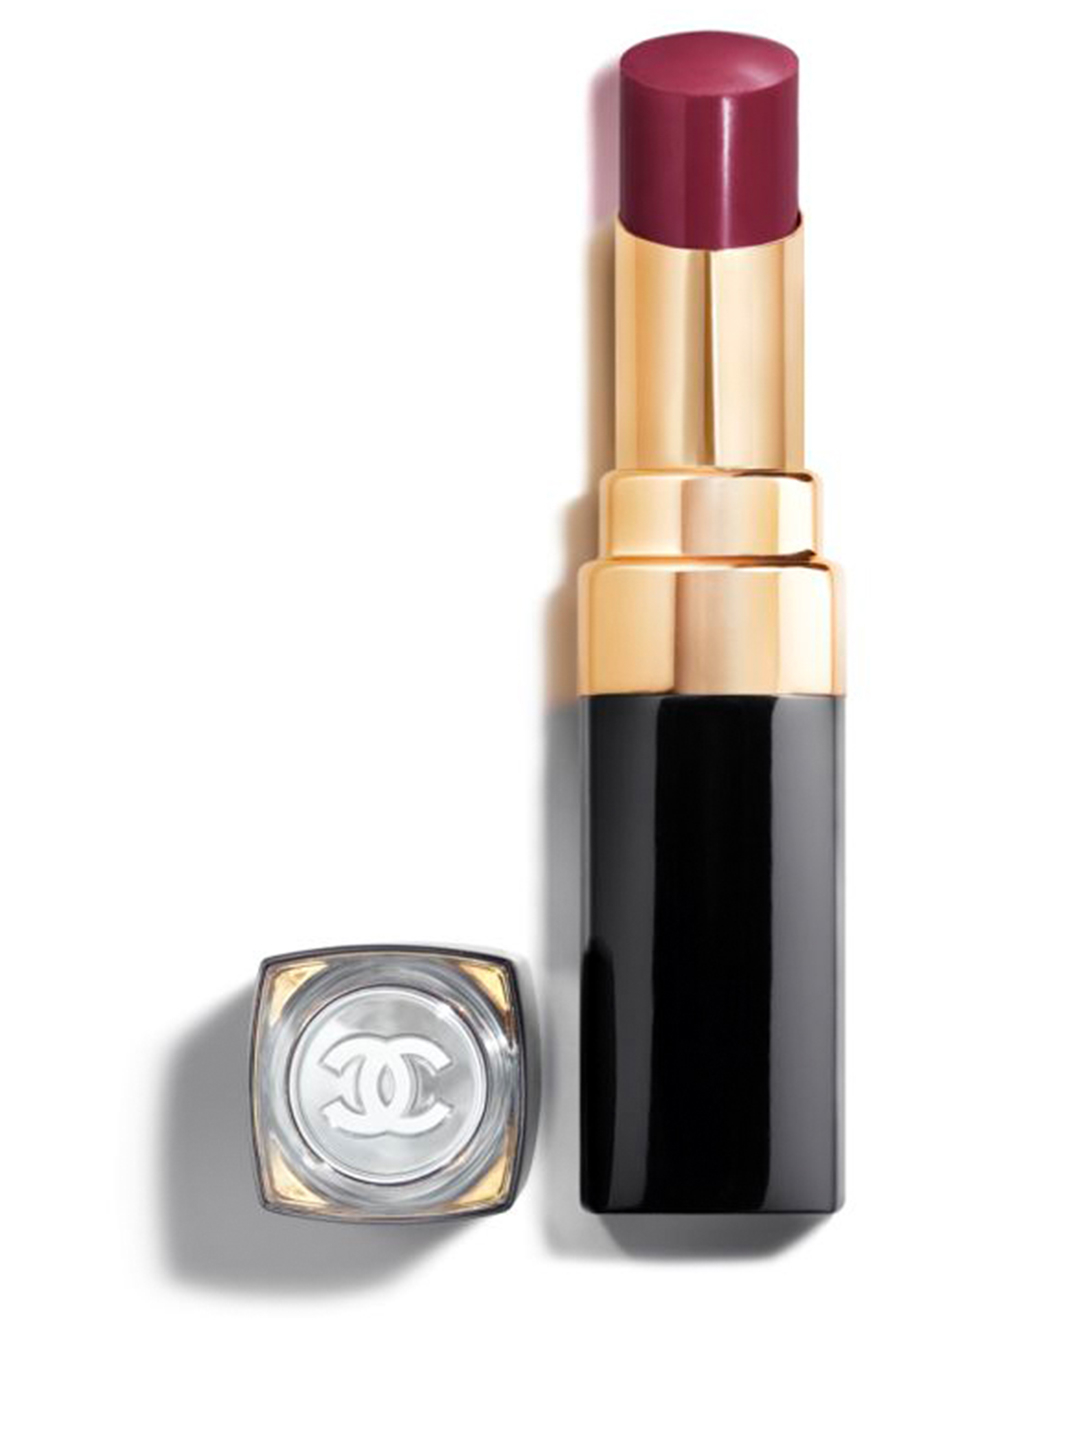 CHANEL La Couleur, La Brillance, L'Intensité En Un Éclair CHANEL Violet